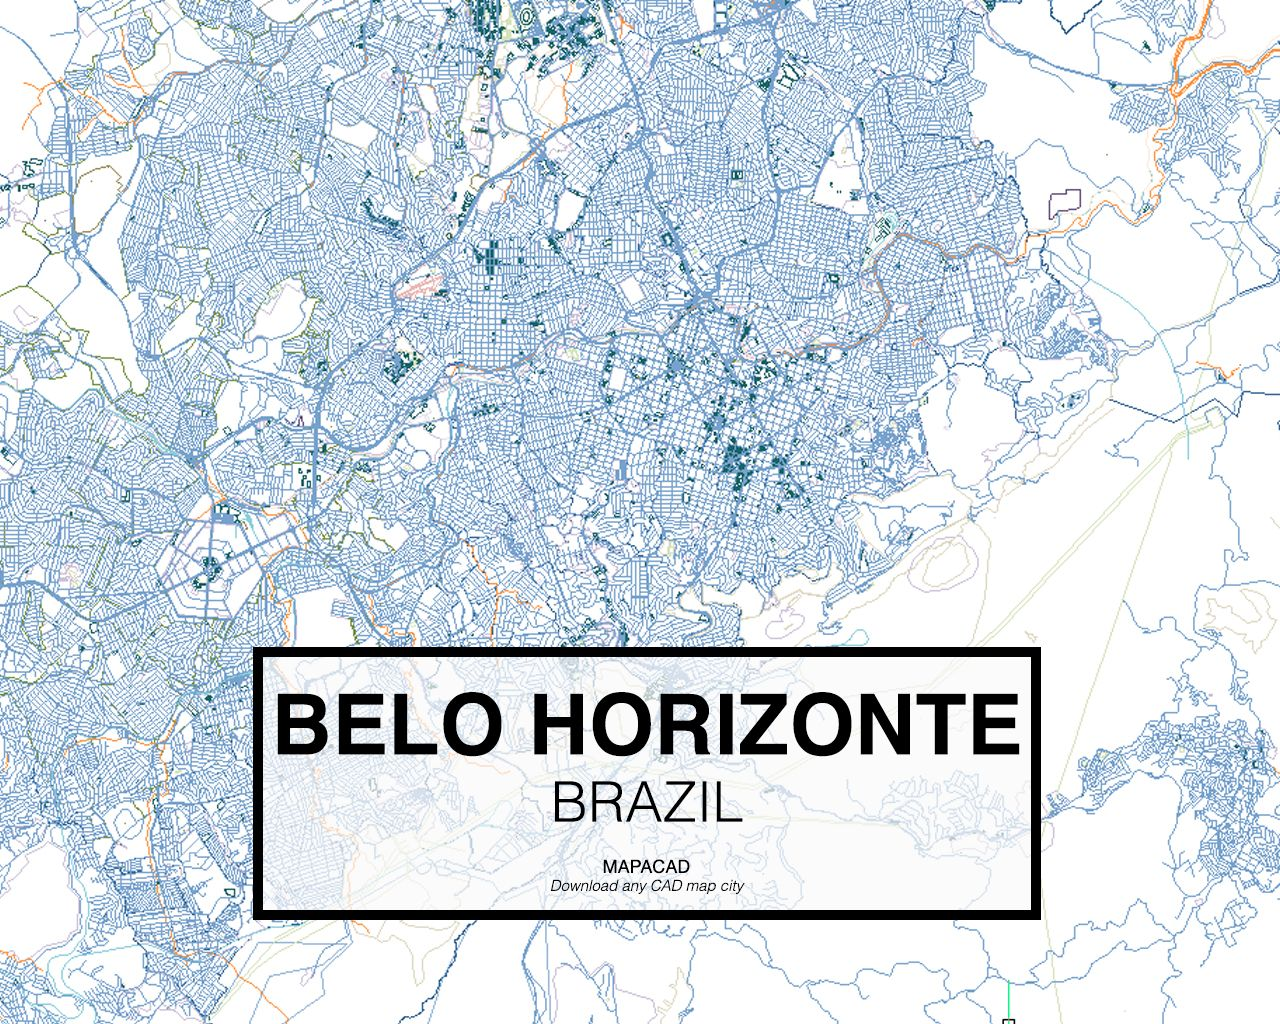 Belo Horizonte Brazil Download CAD Map city in dwg ready to use